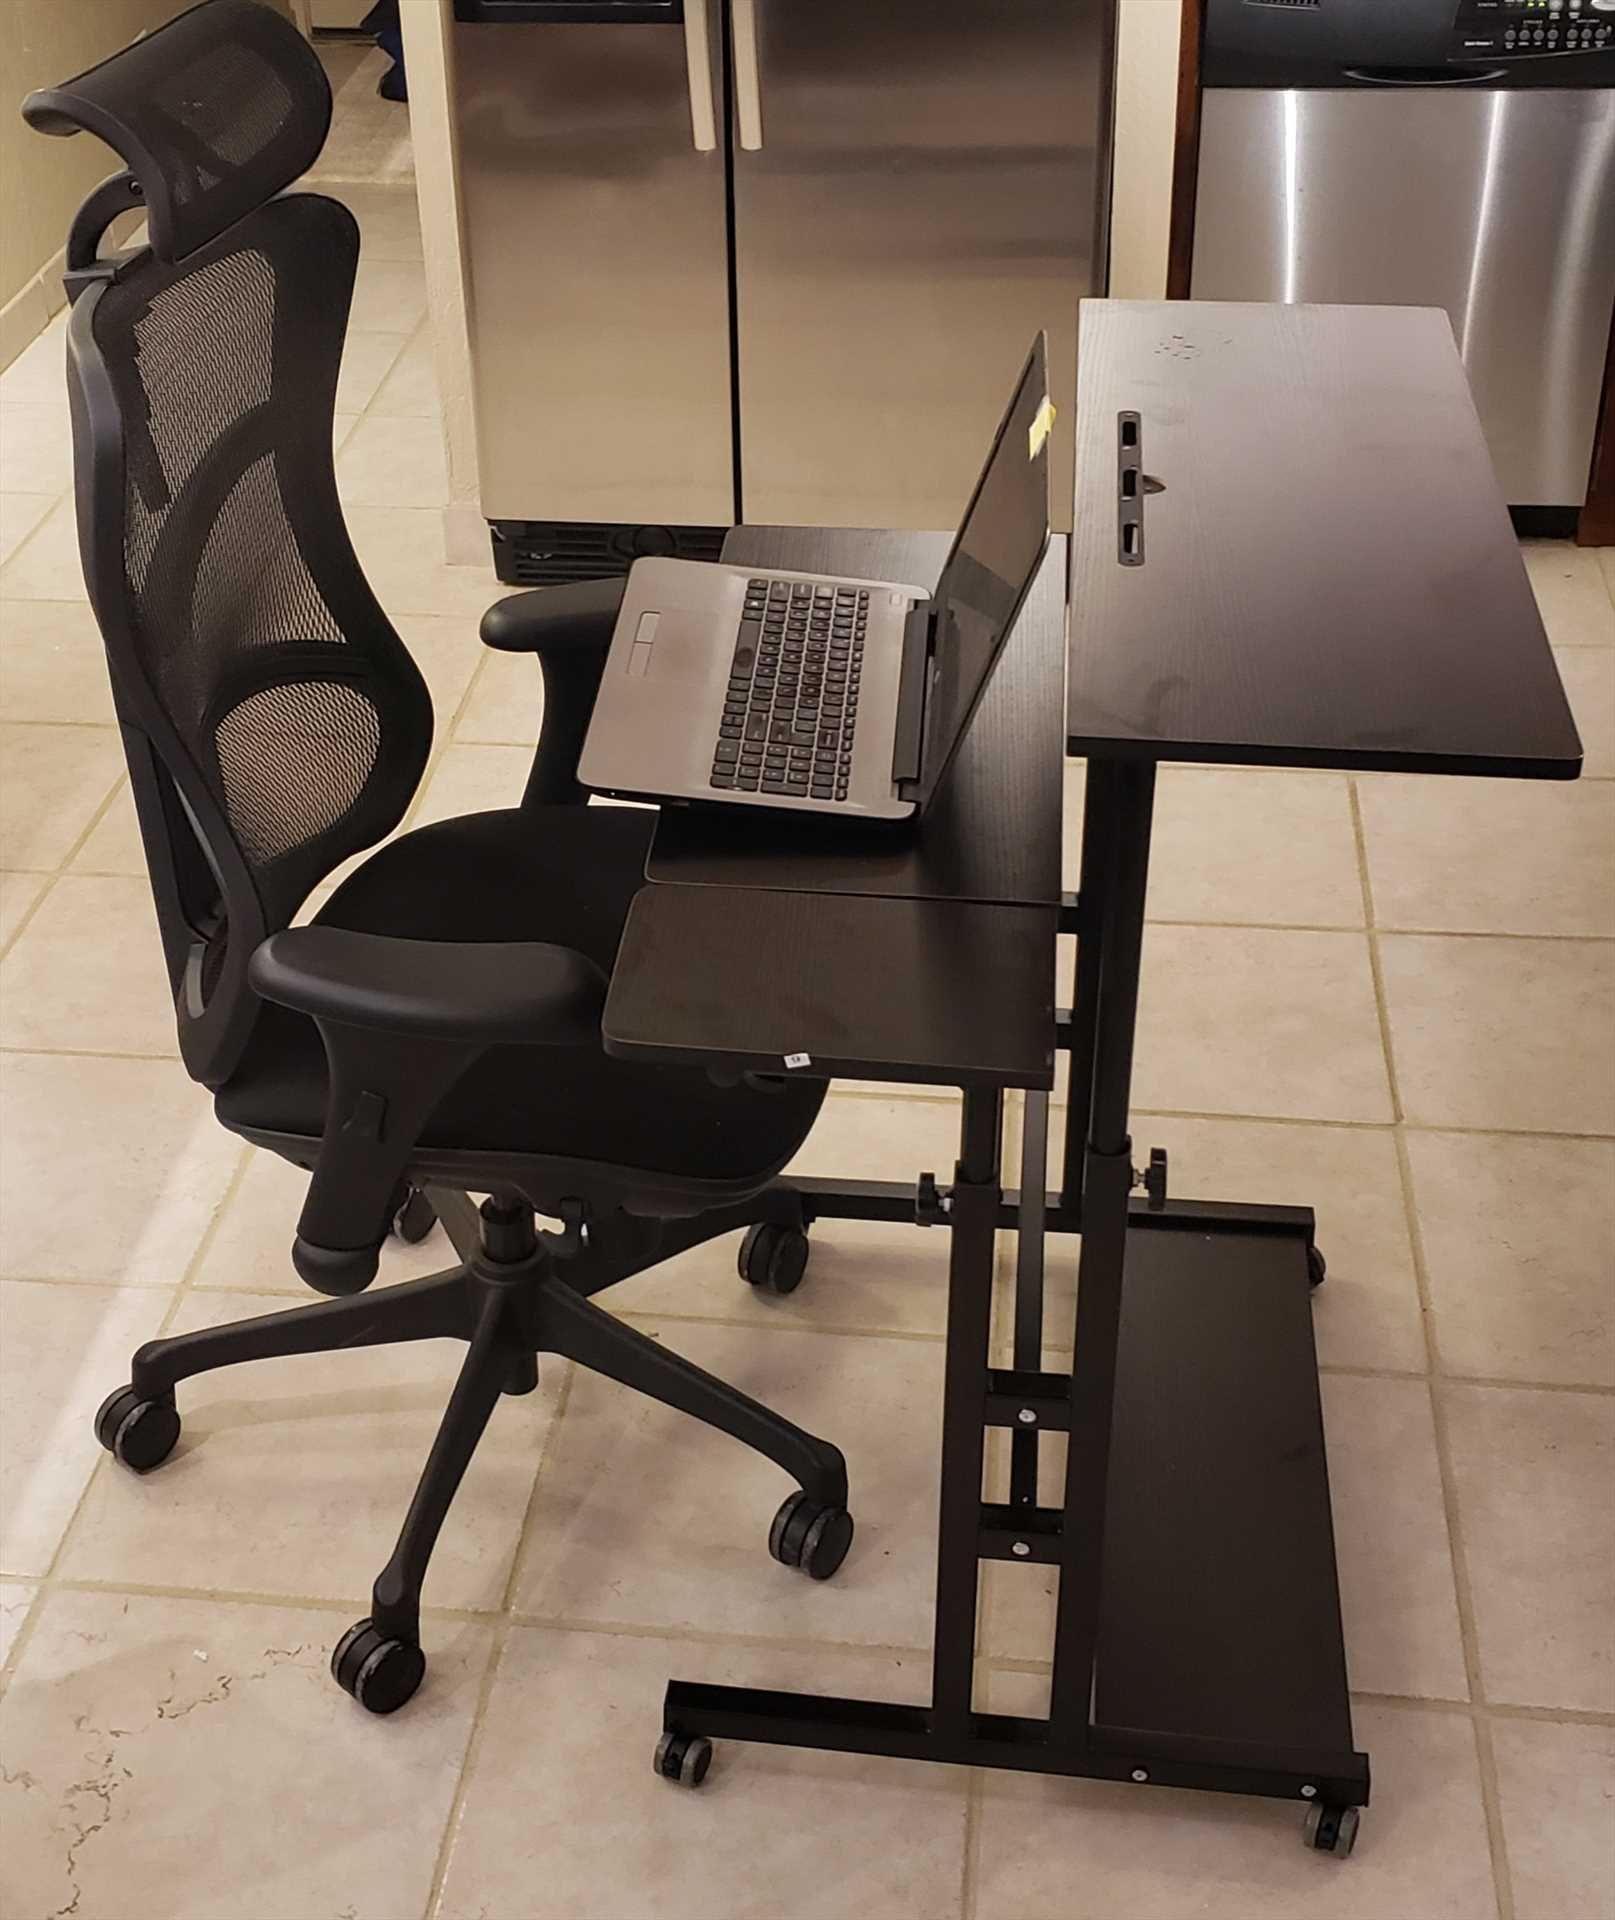 Portable Desk that adjustable height for sitting or standing